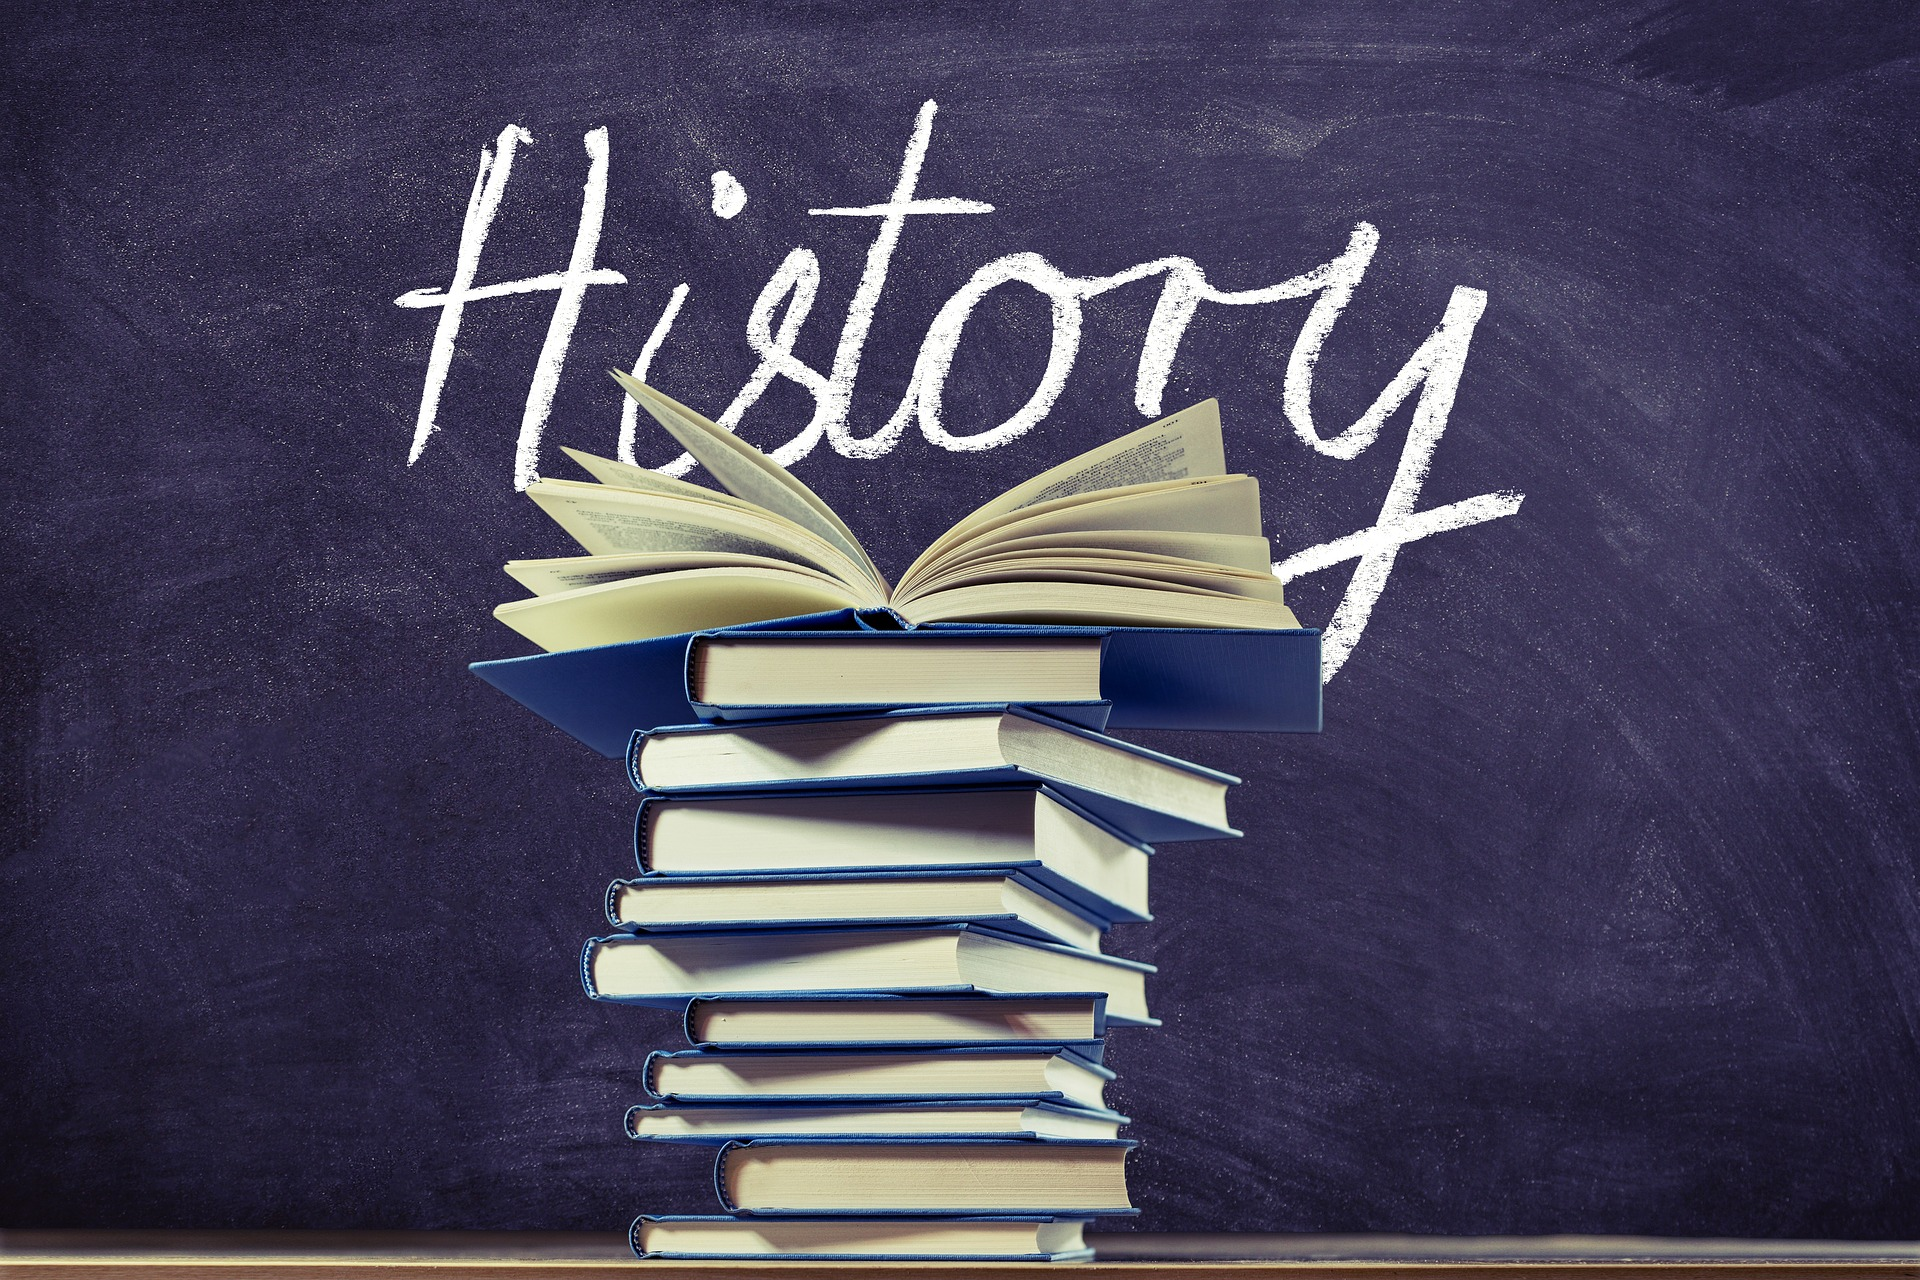 History written on chalkboard with stack of books.